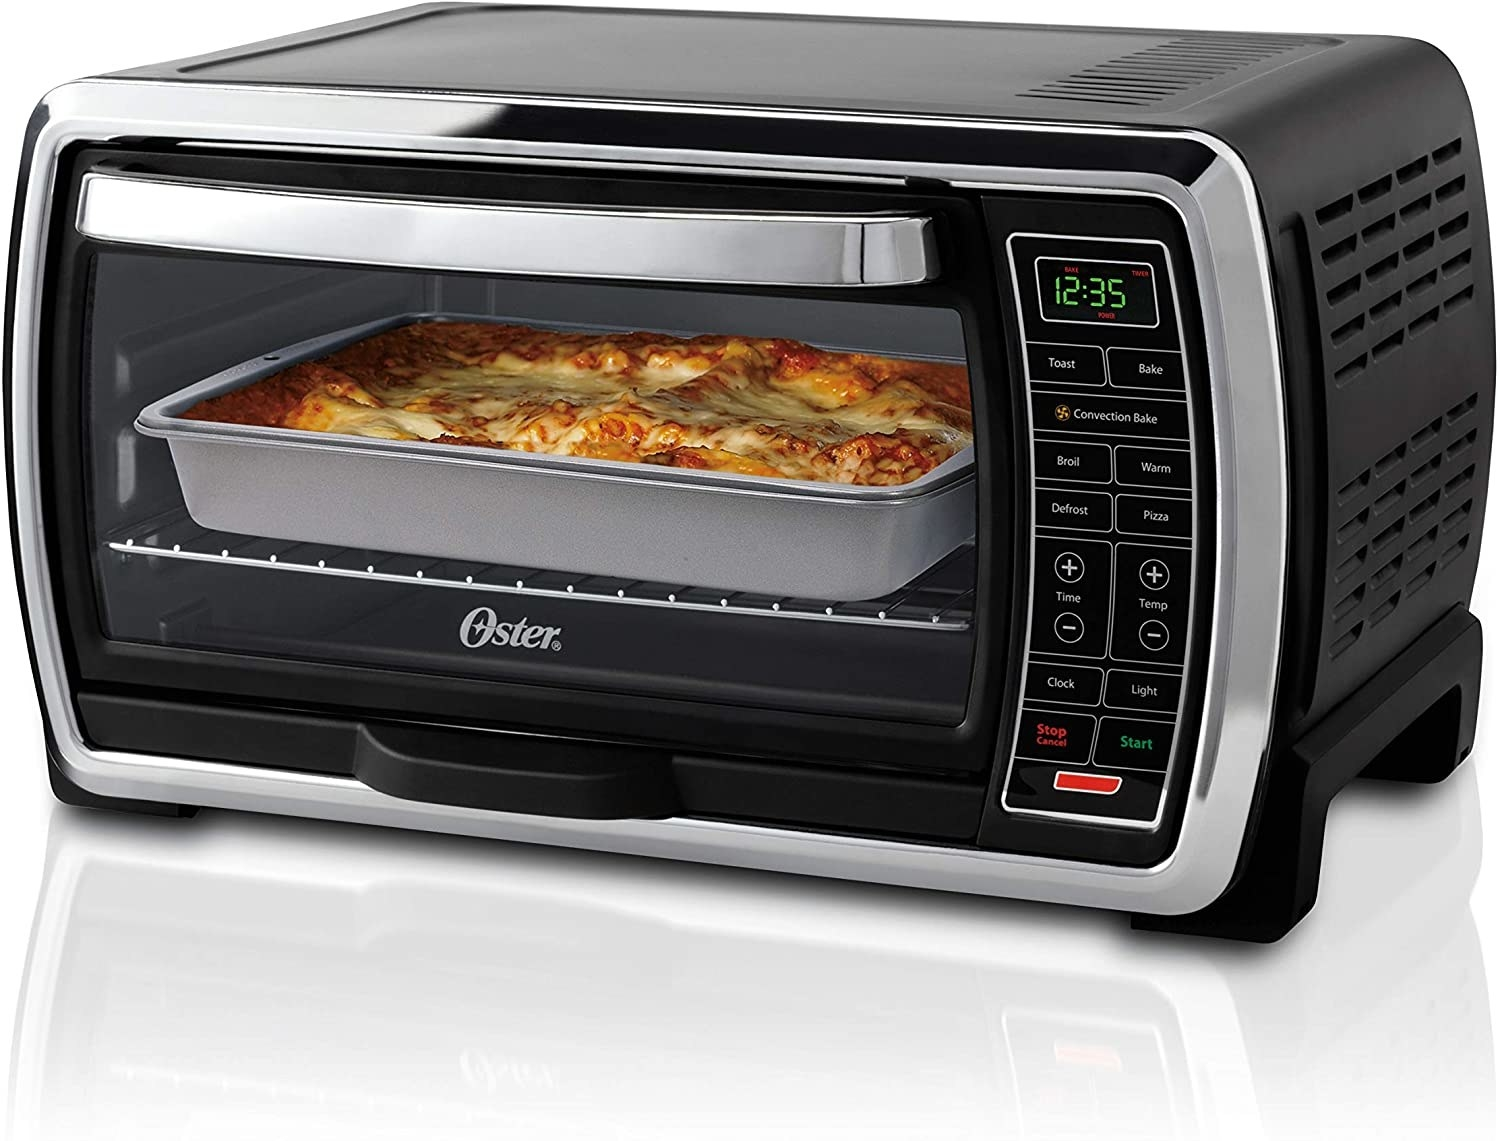 The countertop oven